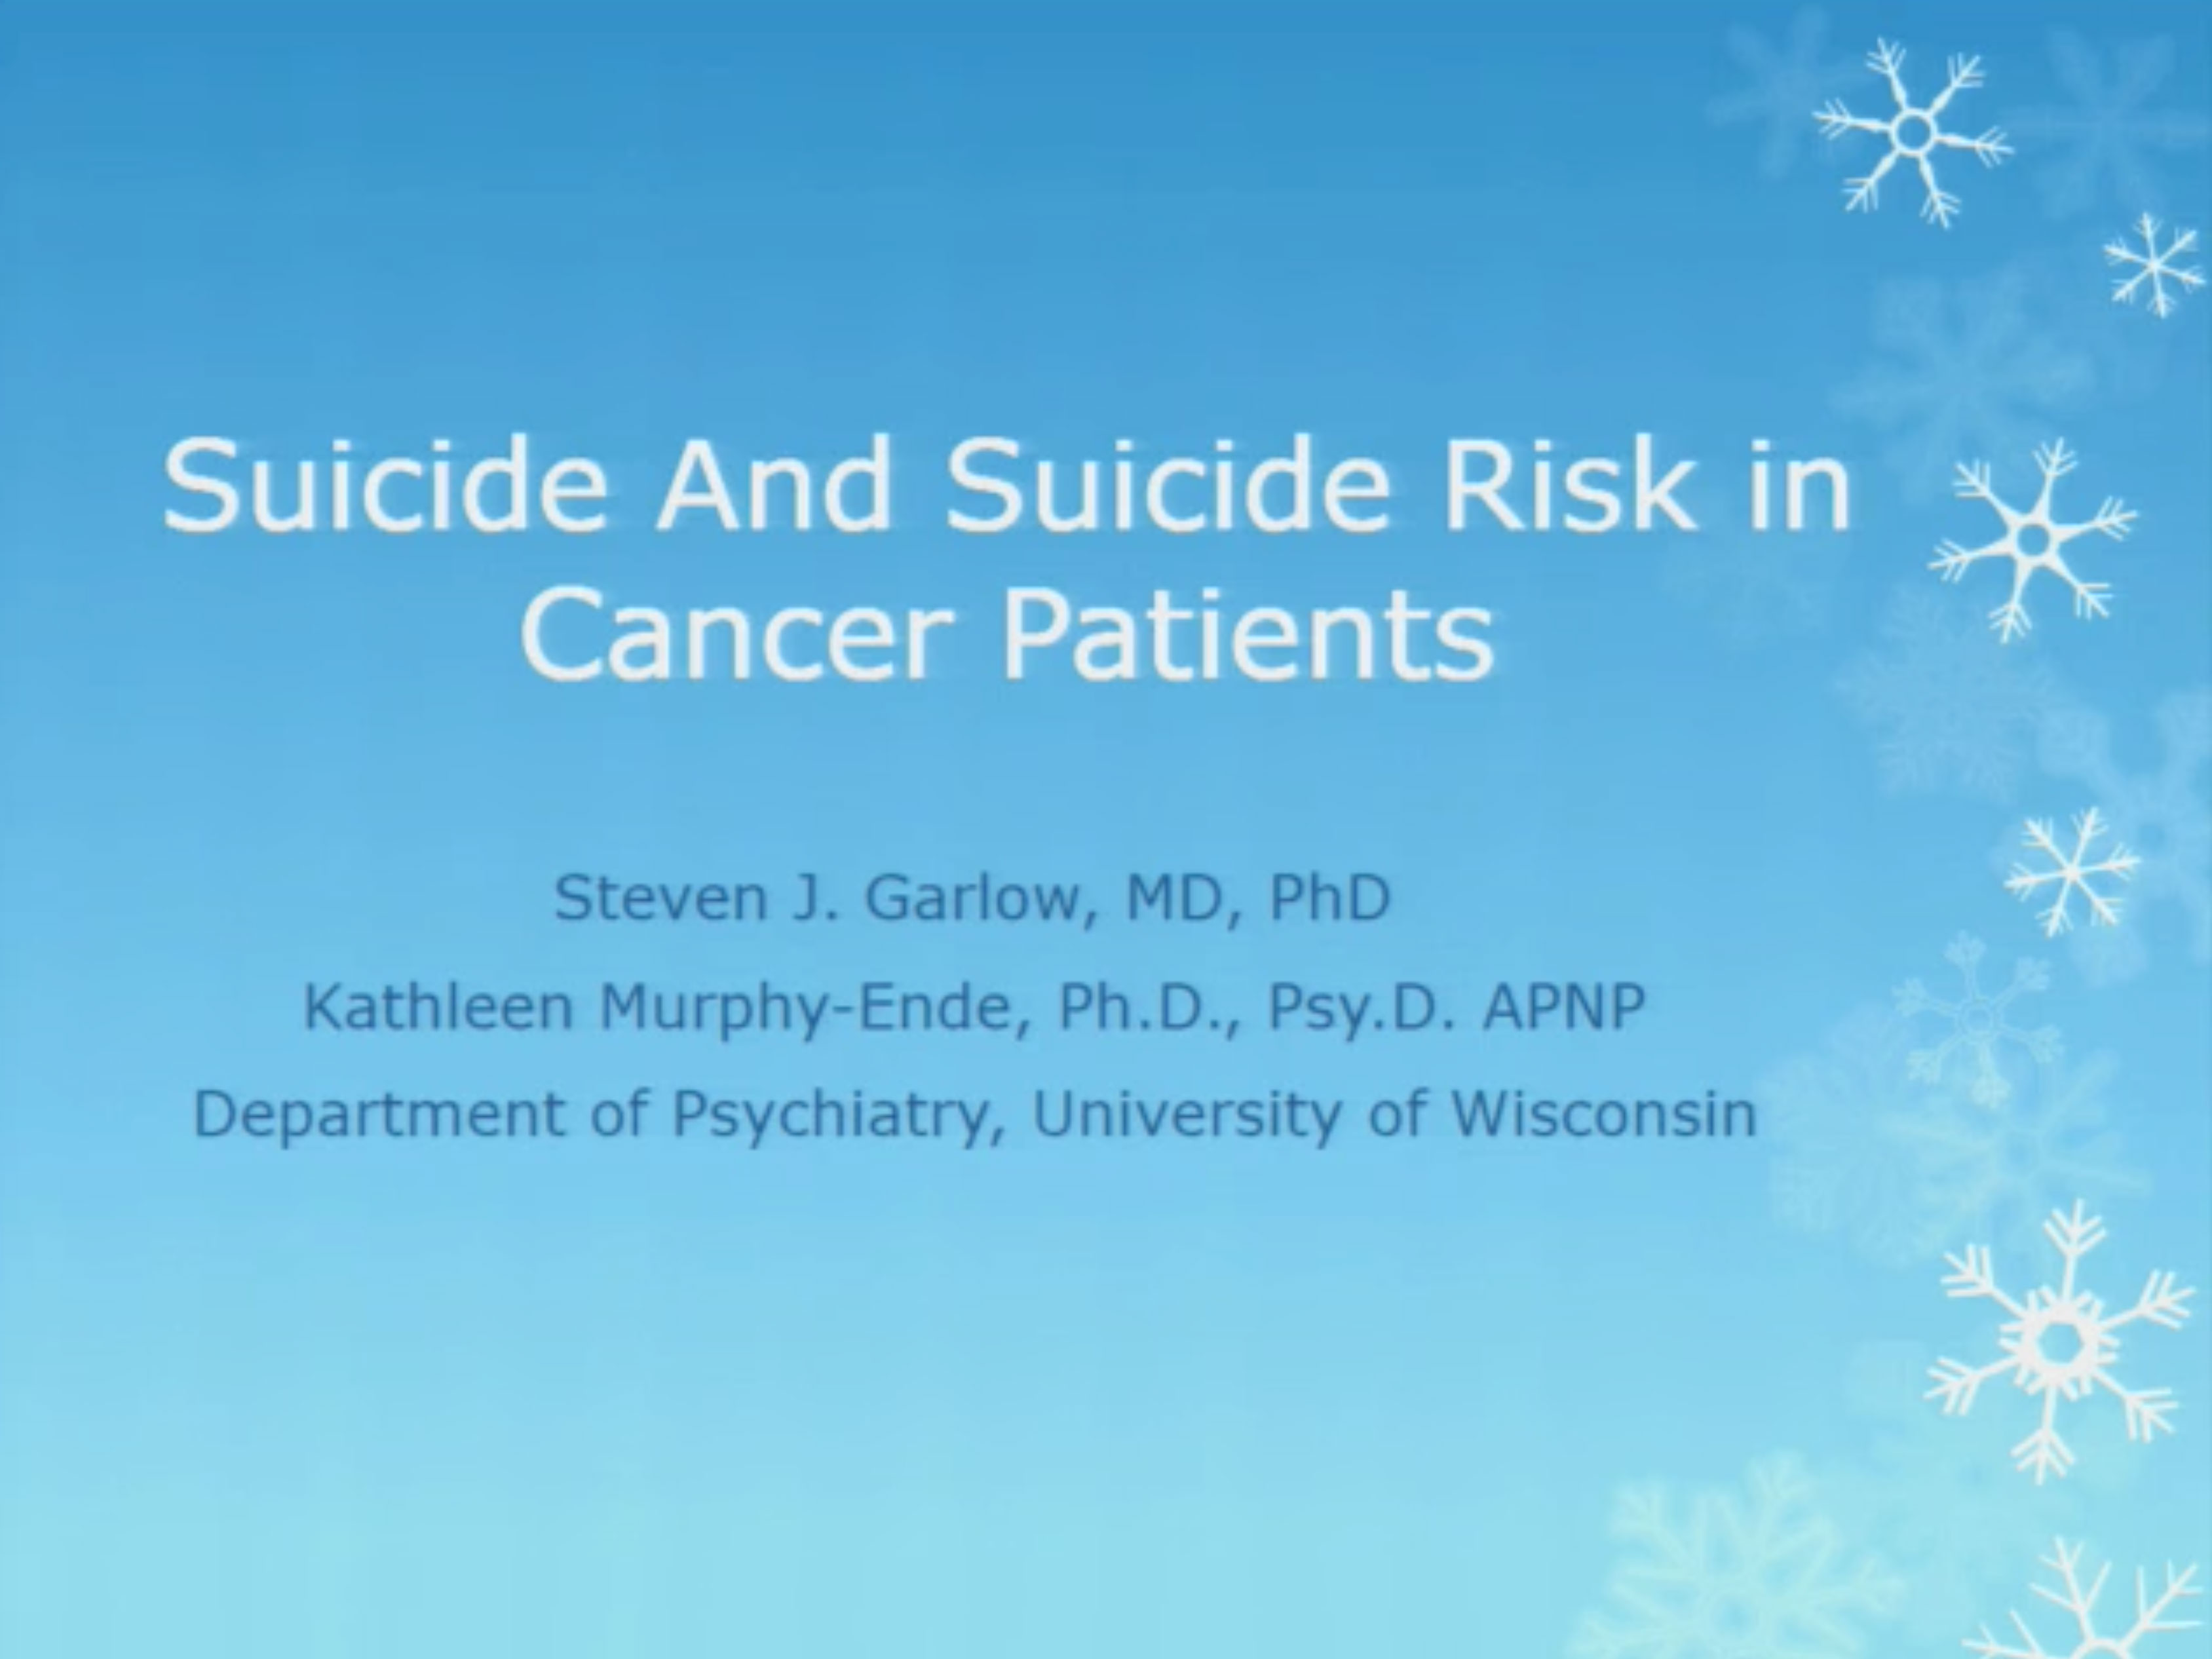 Picture from Suicide and Suicide Risk in Cancer Patients video